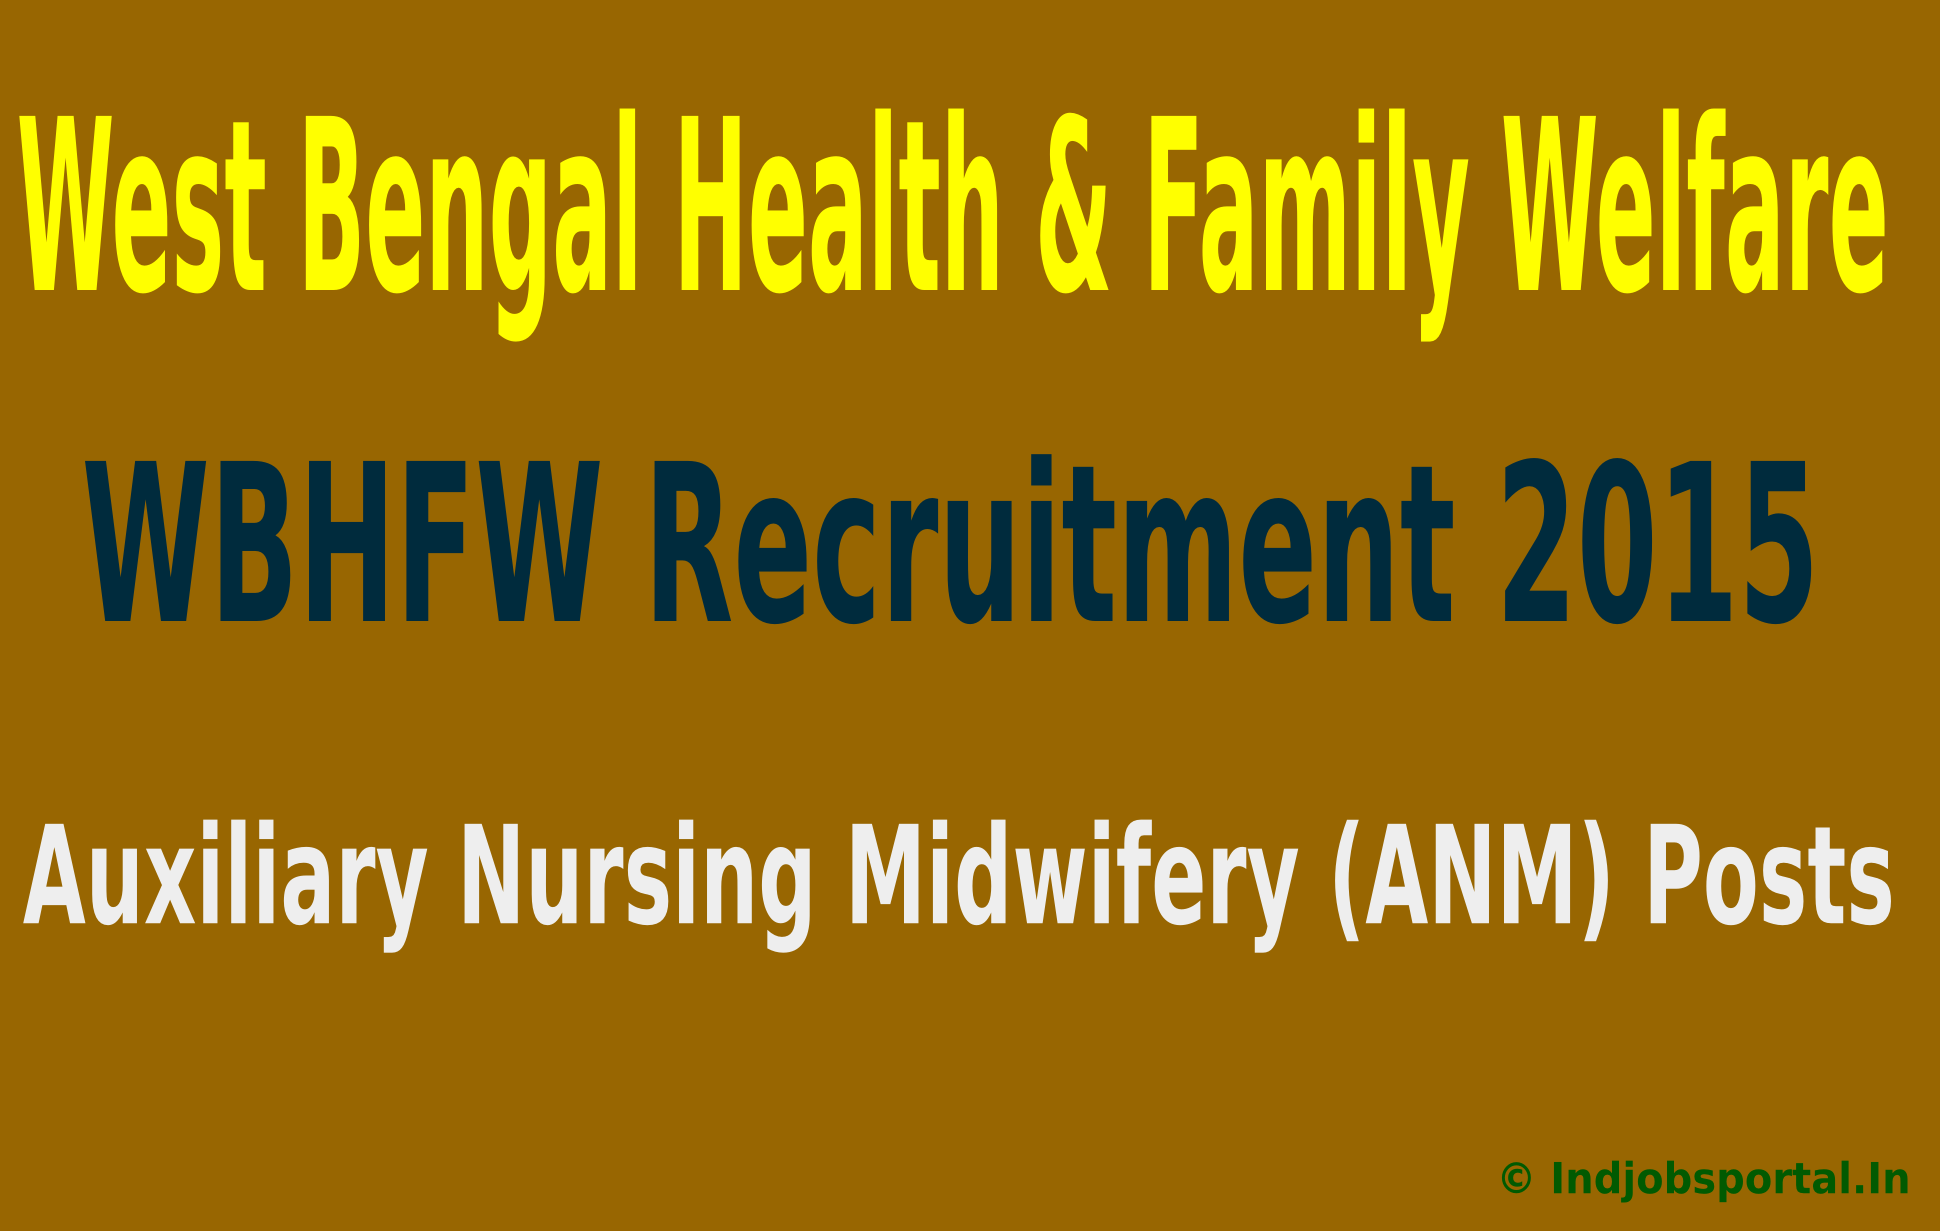 WBHFW Recruitment 2015 For 488 Auxiliary Nursing Midwifery (ANM) Posts